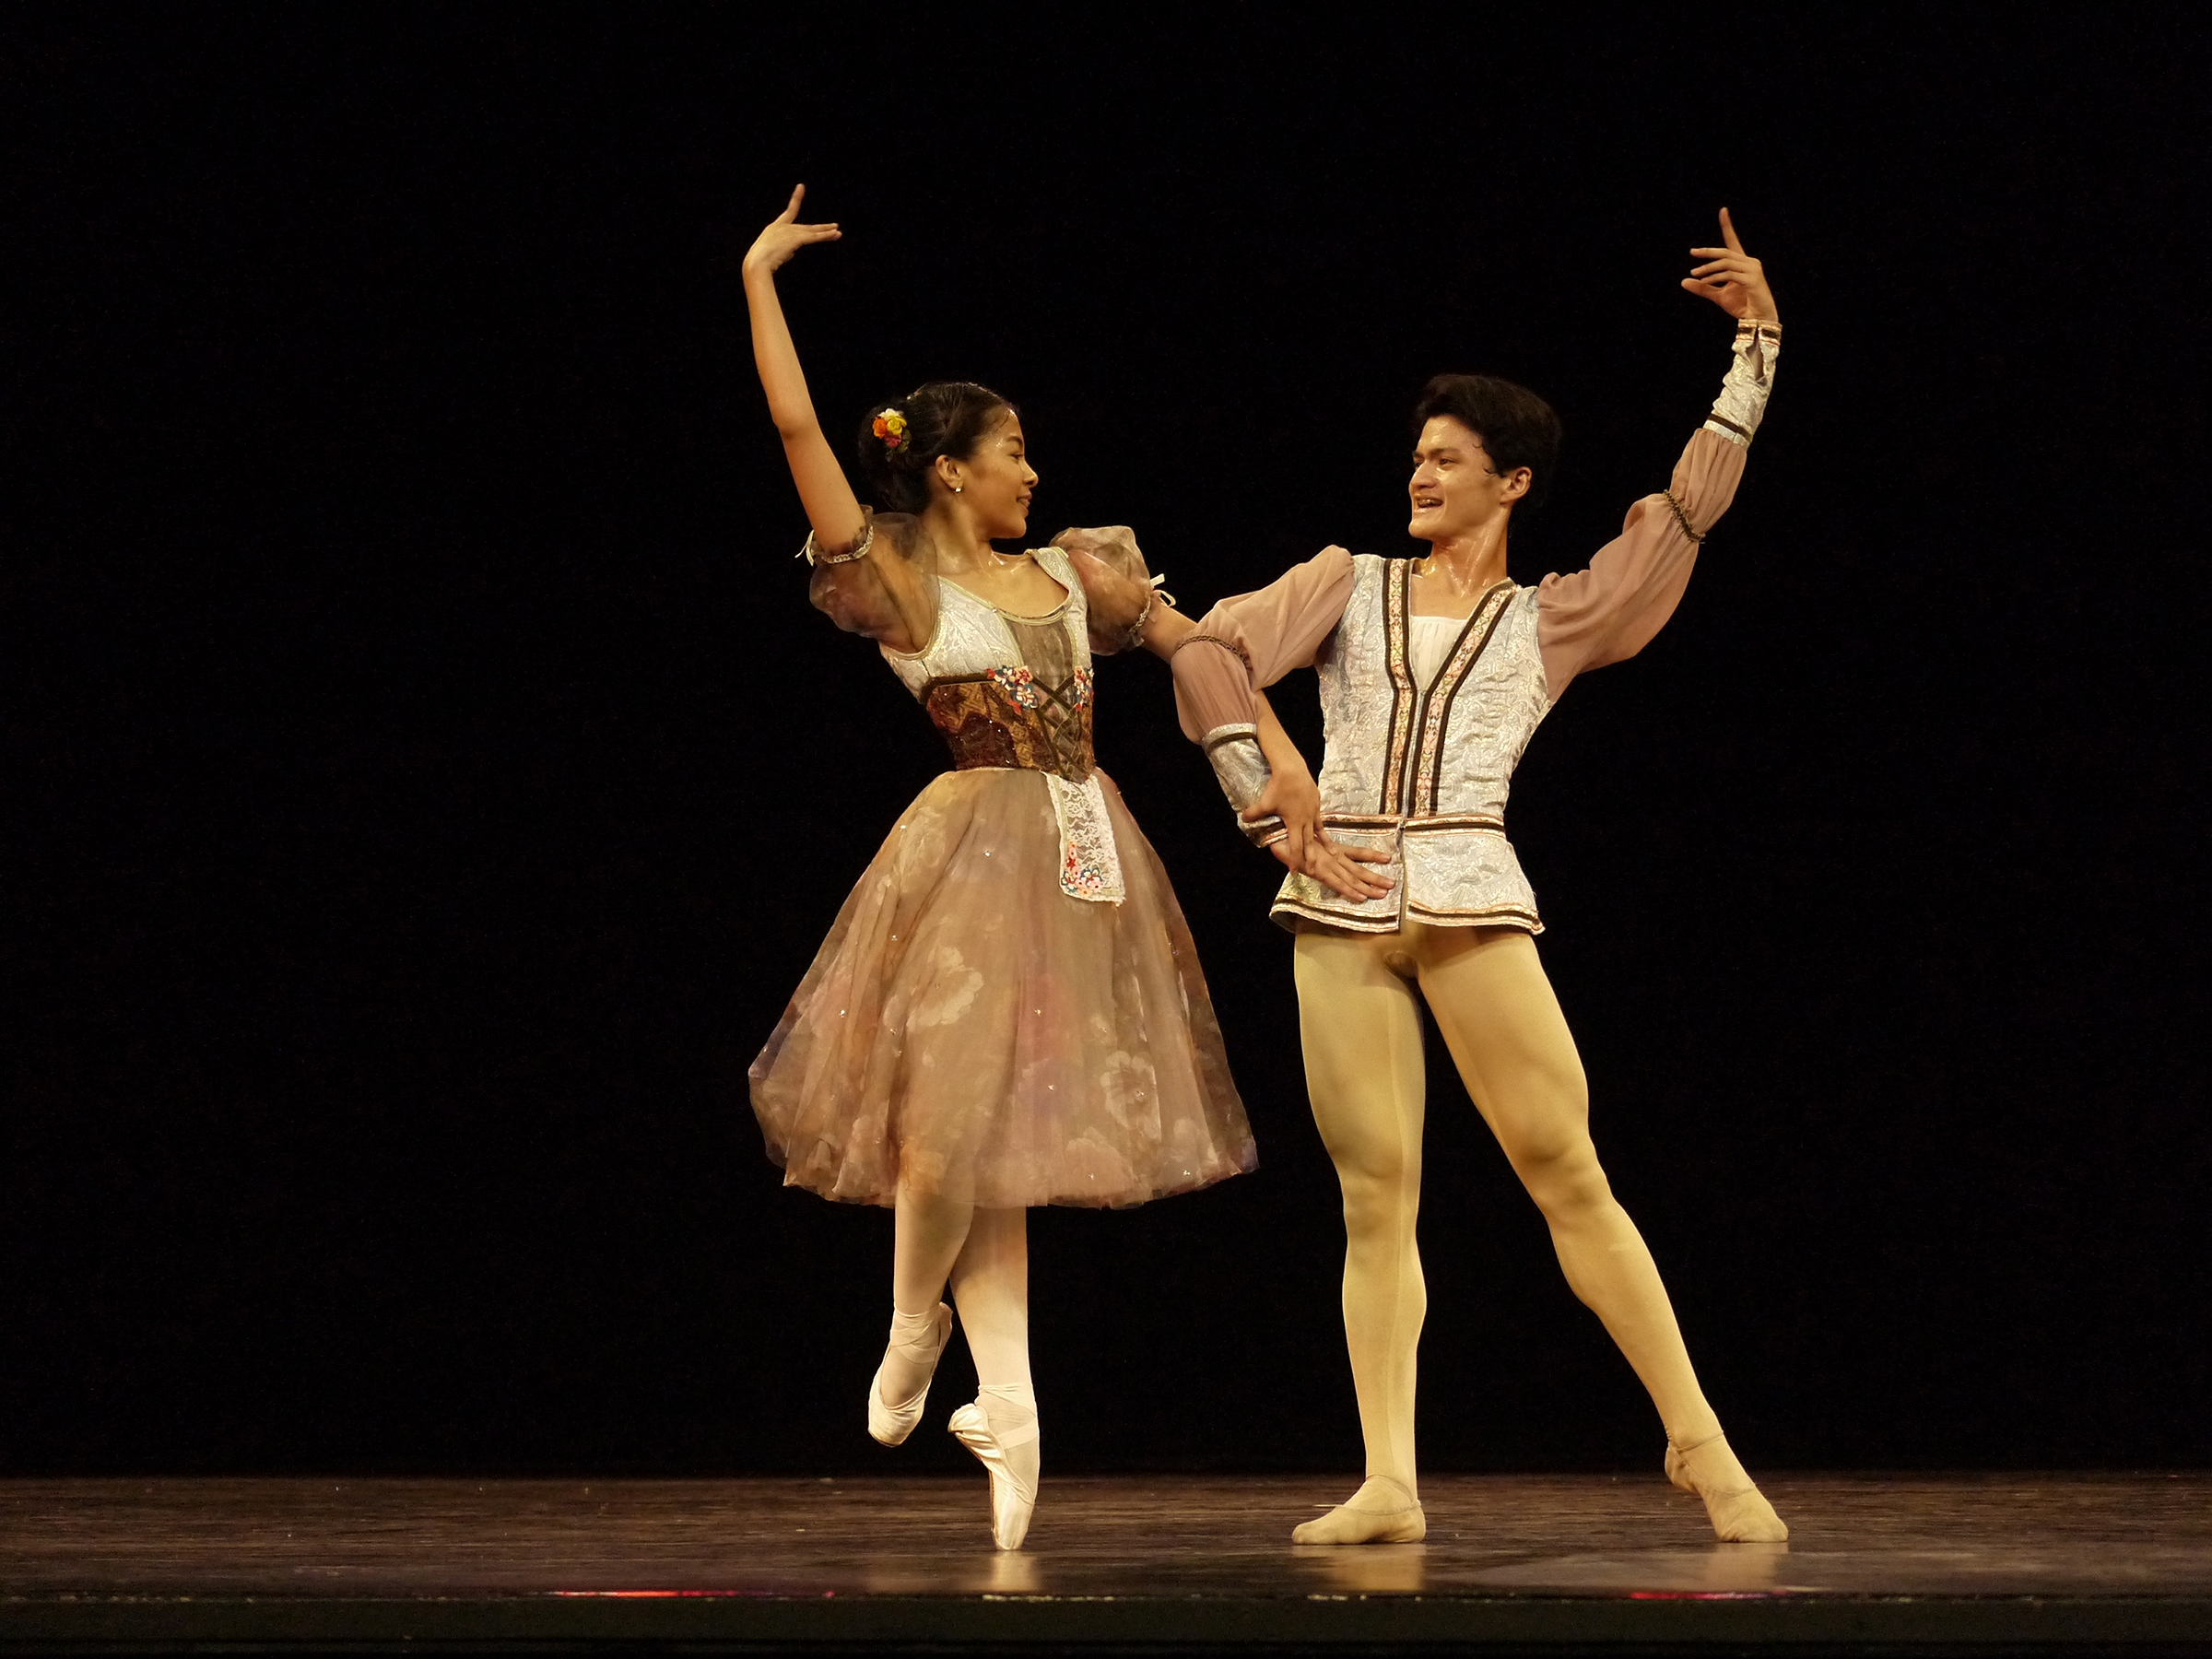 Though still in their teens, soloist Nicole Barroso and company artist Josha Enciso are well on their way to becoming one of the strongest dance partners on Philippine stage. Their recent achievement – a finals finish for Nicole Barroso with a Jury Encouragement Award from the 2018 USA International Ballet Competition – saw the pair power through one grueling elimination after another. The crowd noted the synergy which resulted in explosive performances from the pair. Photo by Giselle P. Kasilag